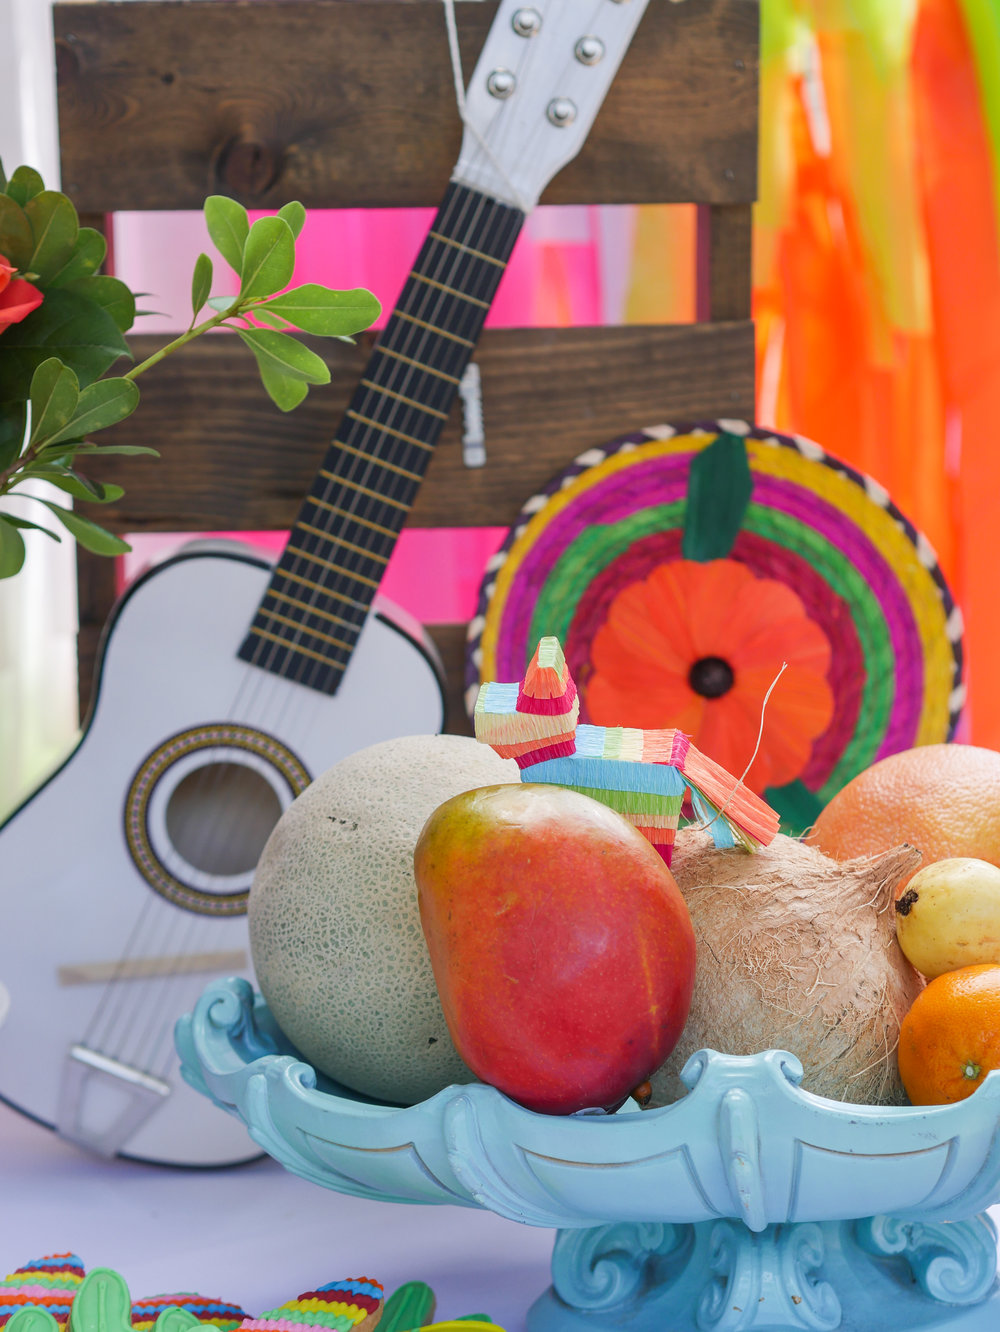 Mini guitars like the ones in Coco decorated the tables, along with fresh fruits and vegetables.